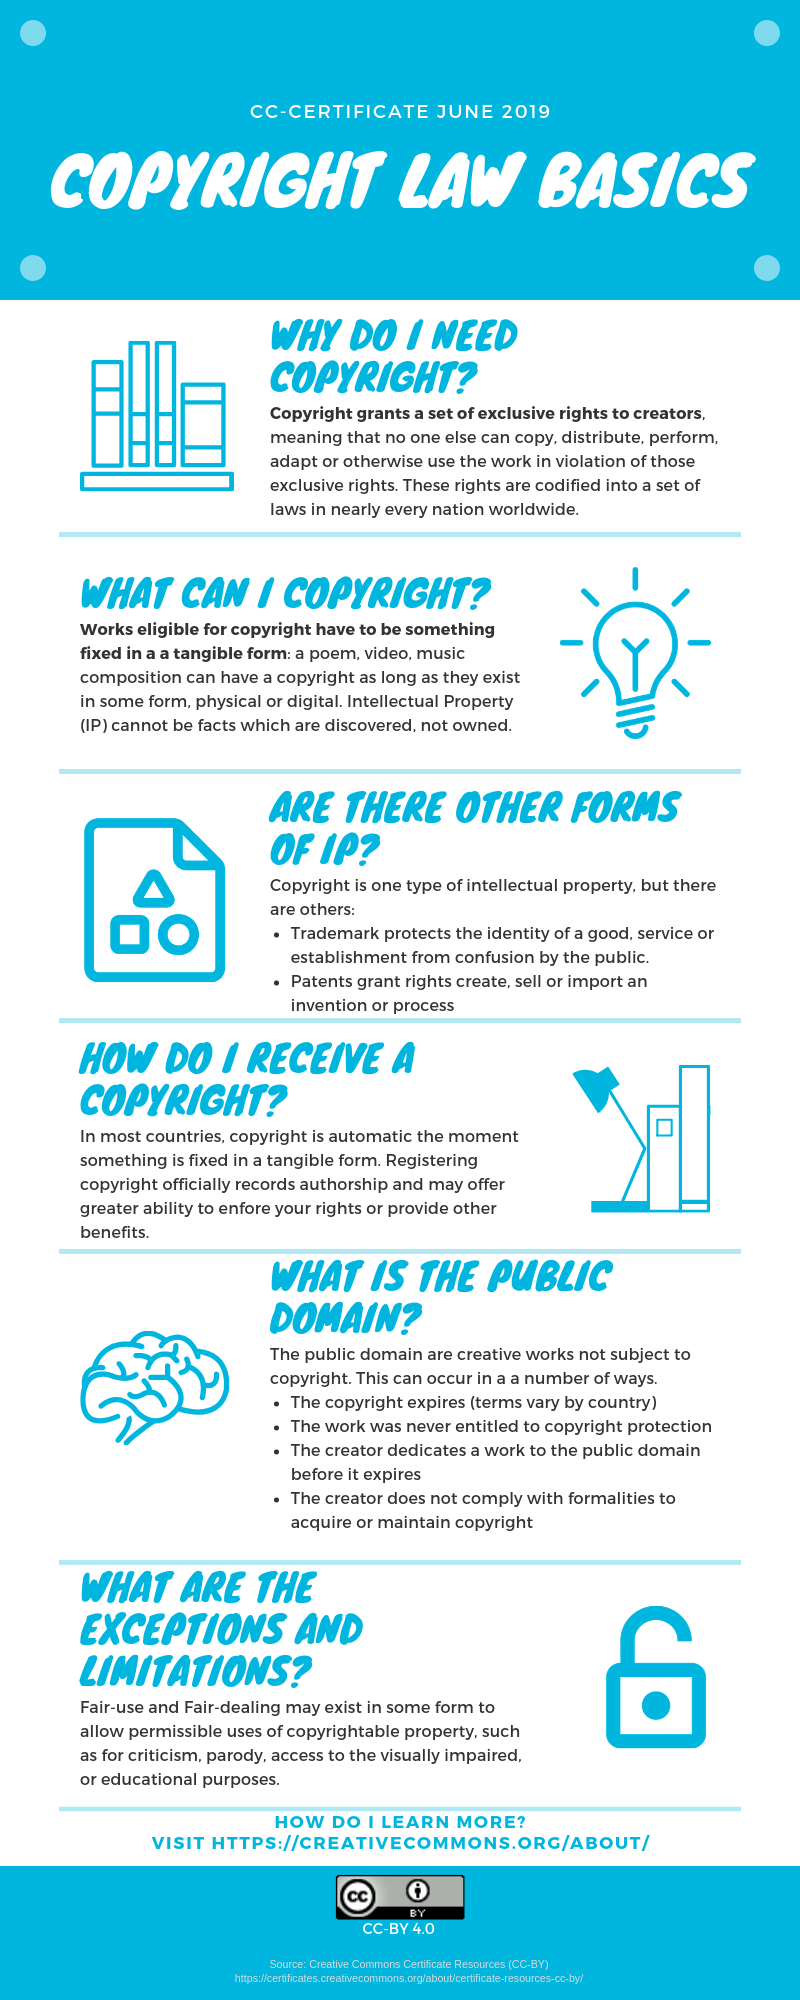 Infographic on Copyright Law Basics